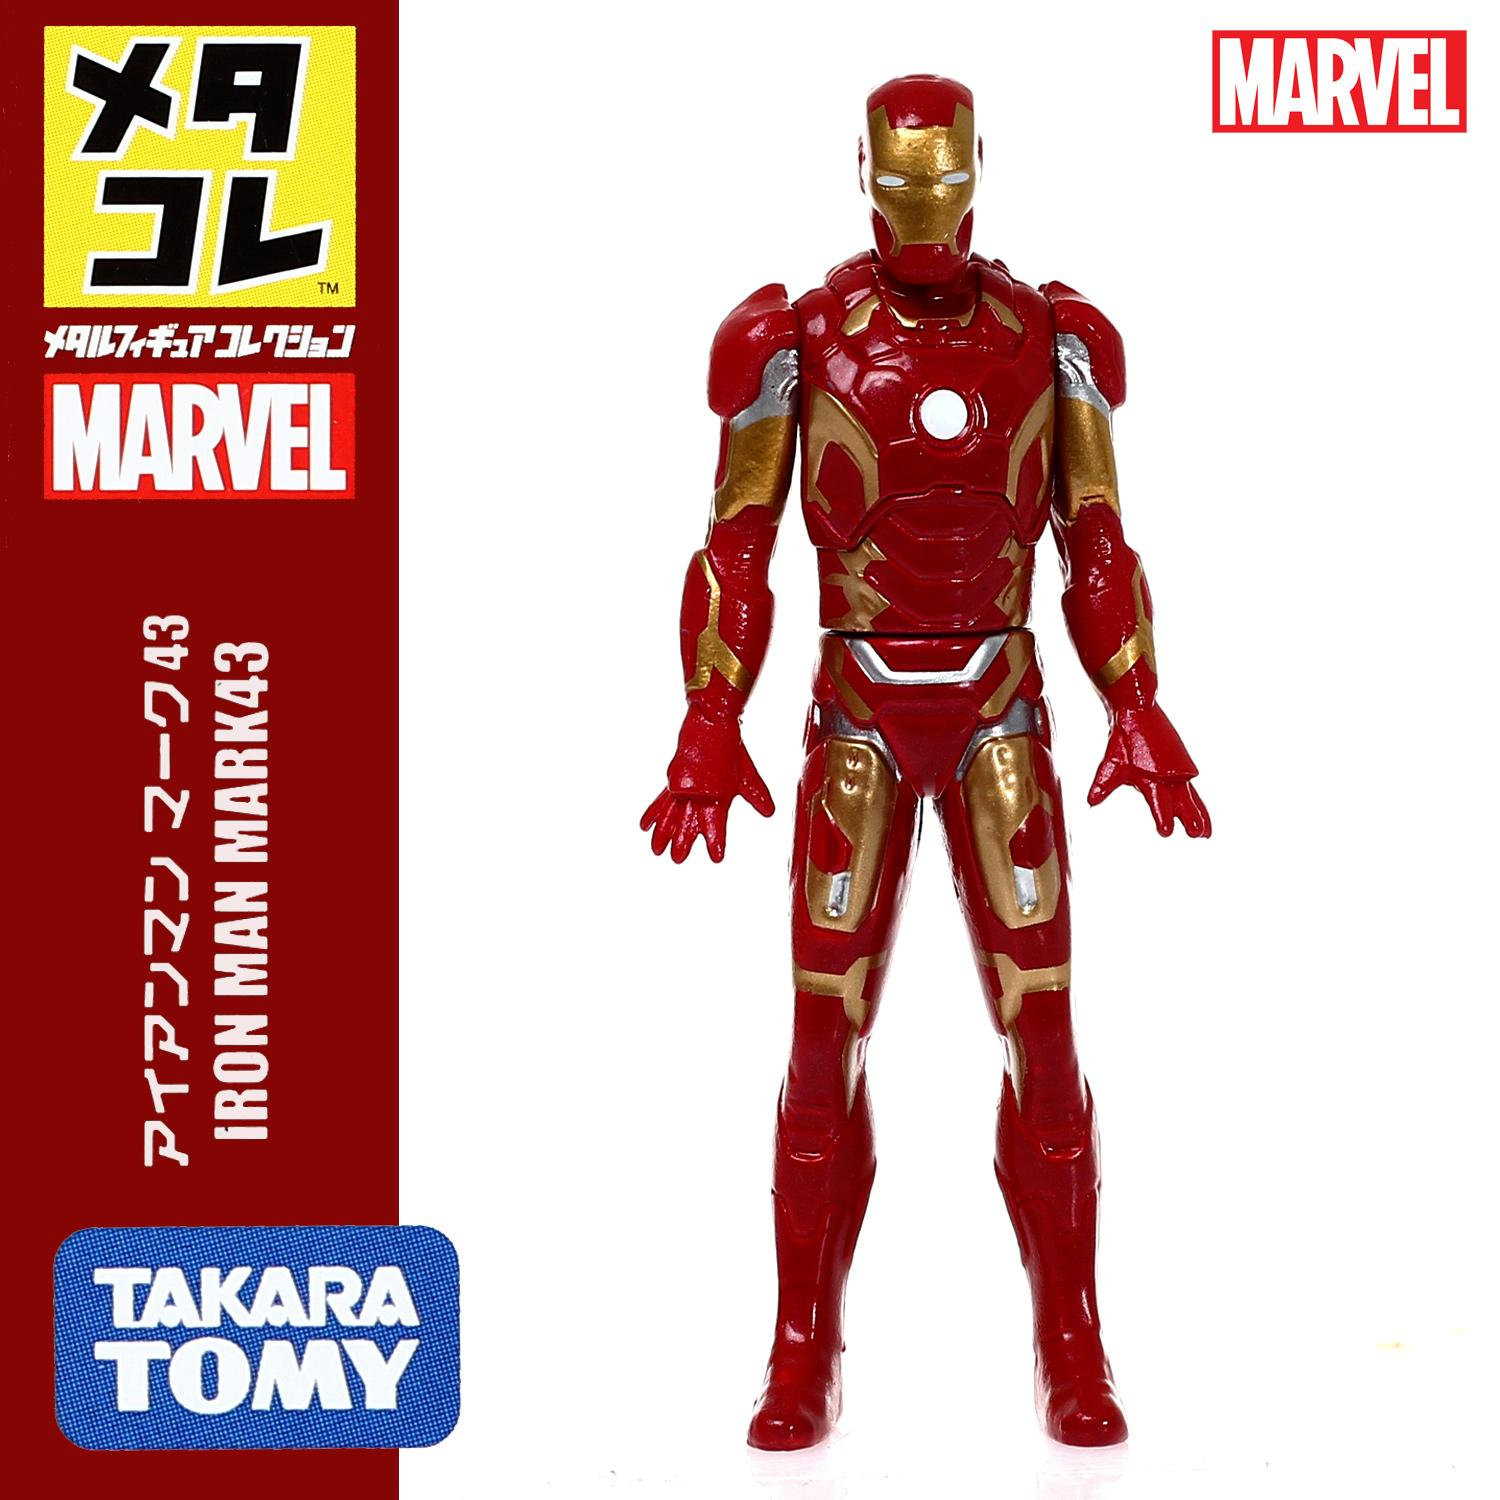 c9772d7aae2a Marvel Philippines  Marvel price list - Toys, Action Figures ...